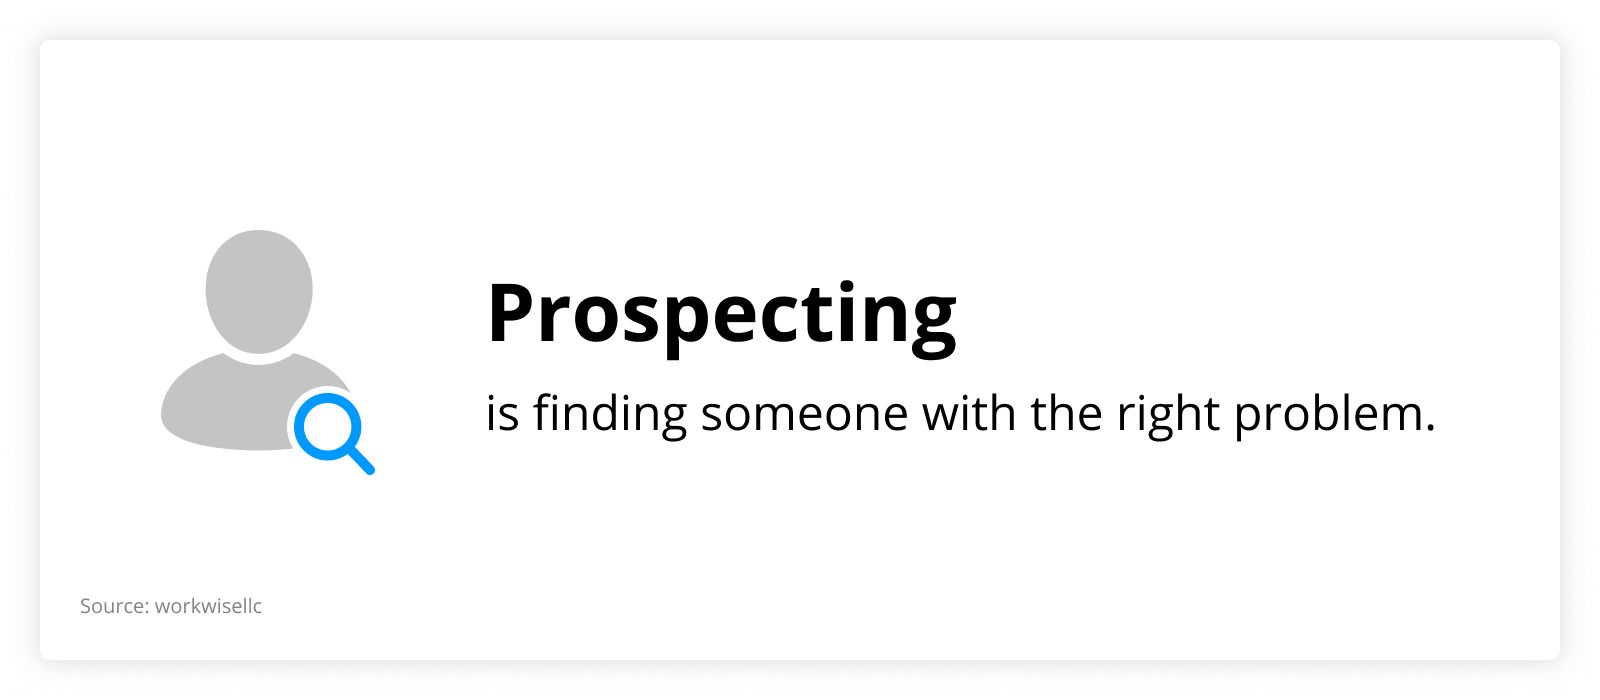 graph showing that prospecting is finding someone with the right problem